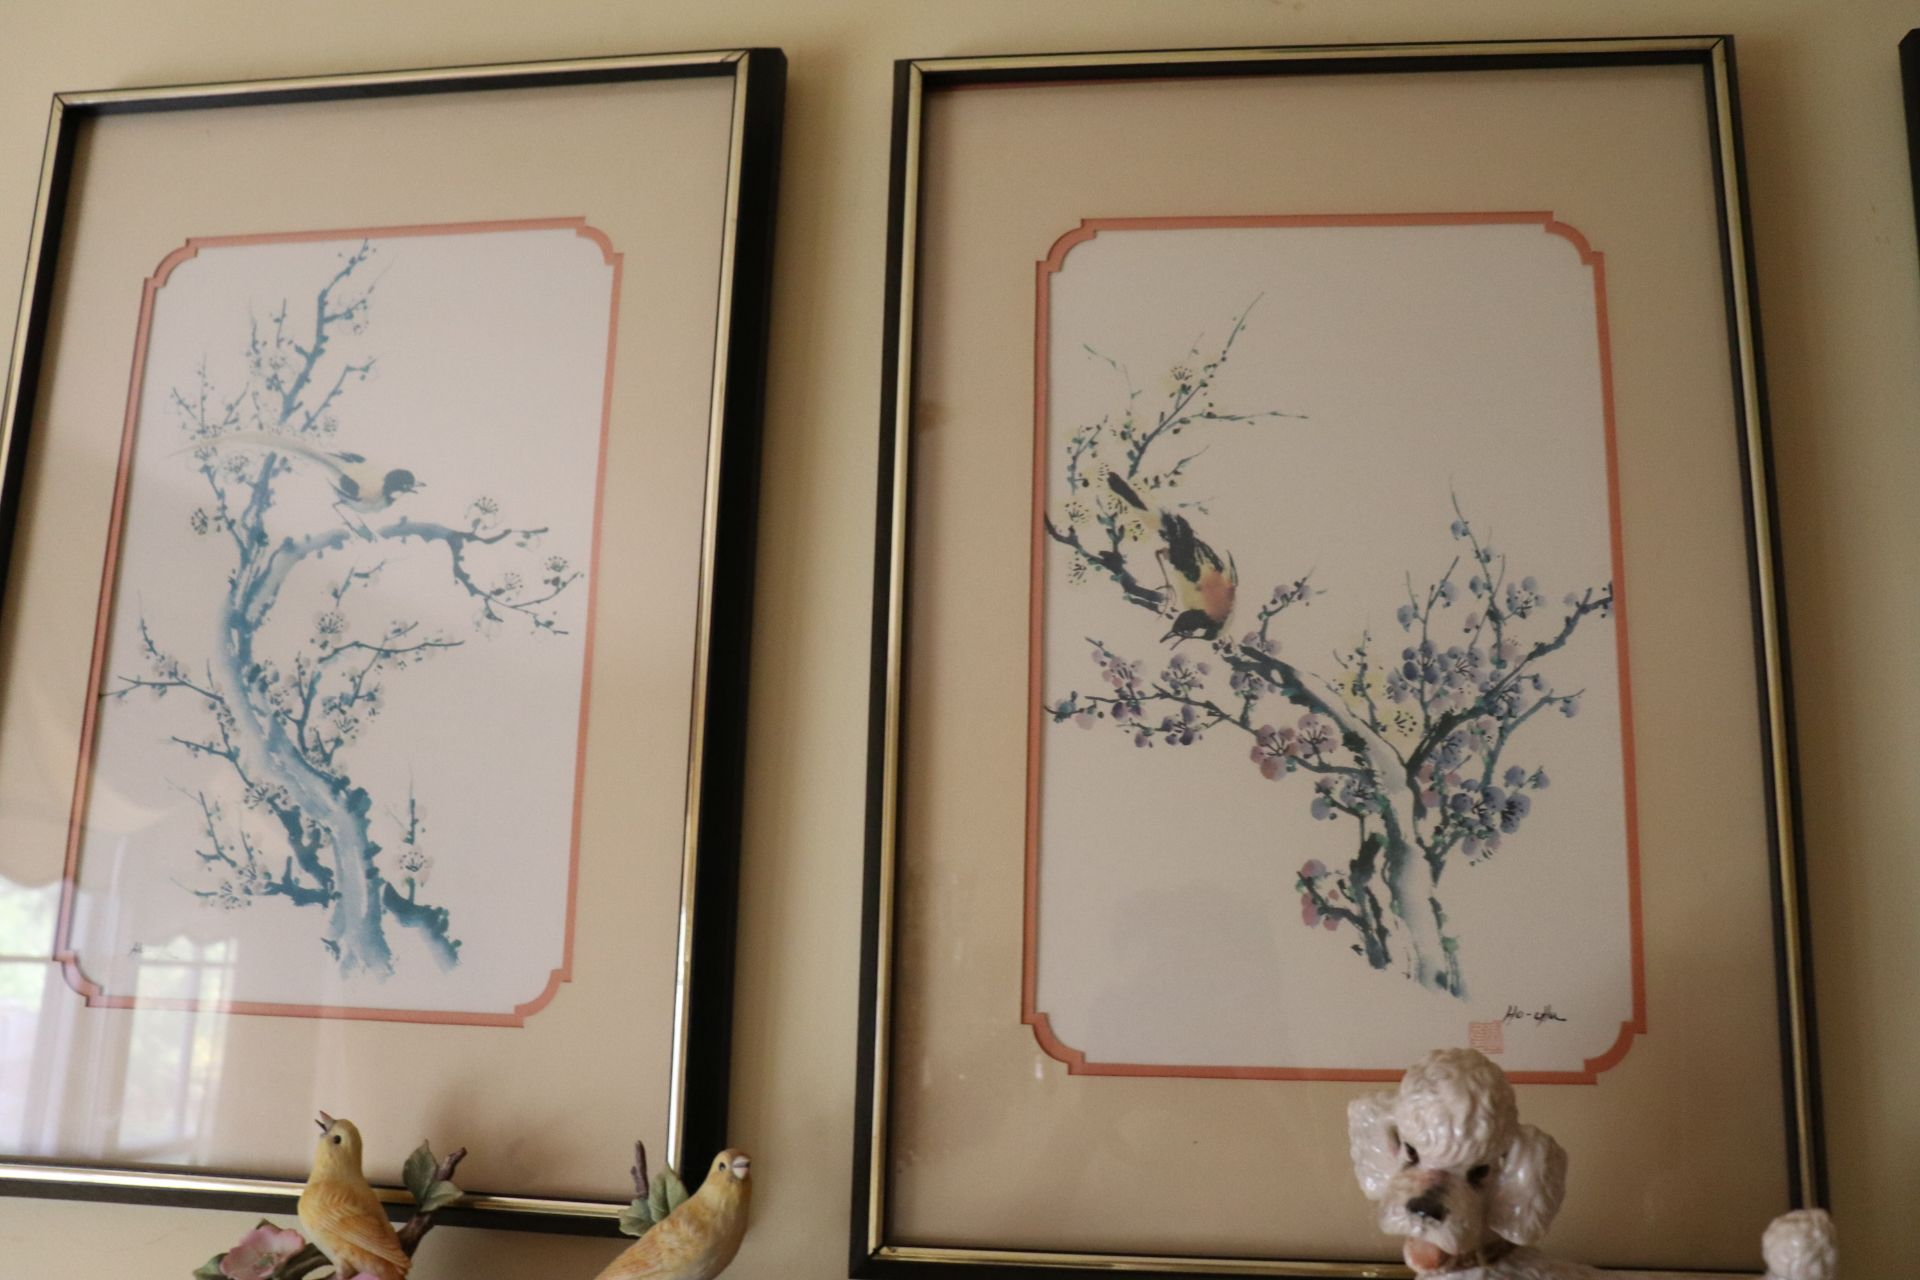 Set of four Asian color screenprints on paper depicting birds and foliage, all matted and framed, ap - Image 3 of 5